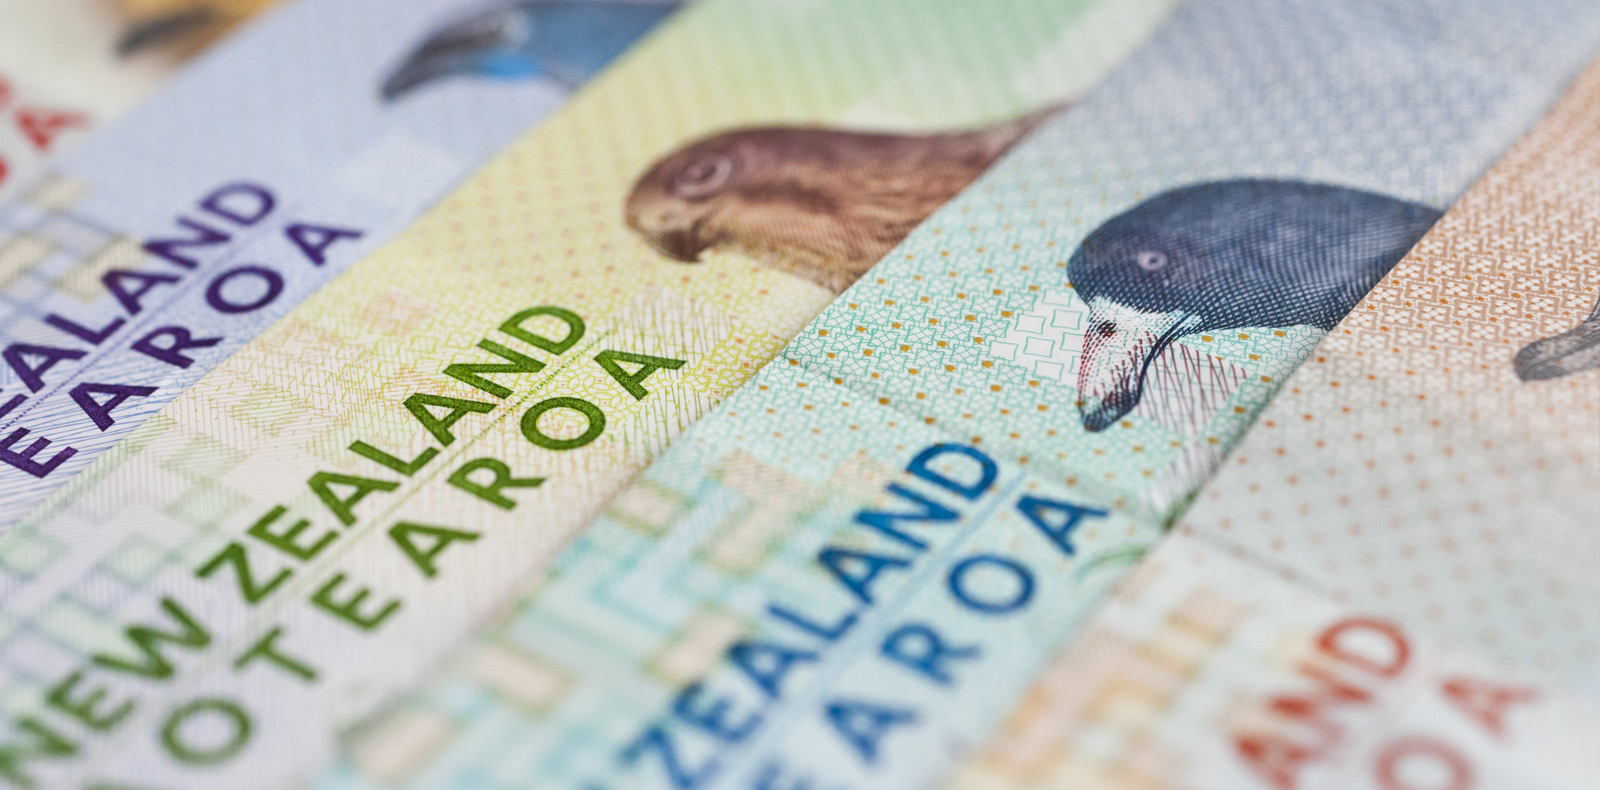 NZD strengthened by EU talks